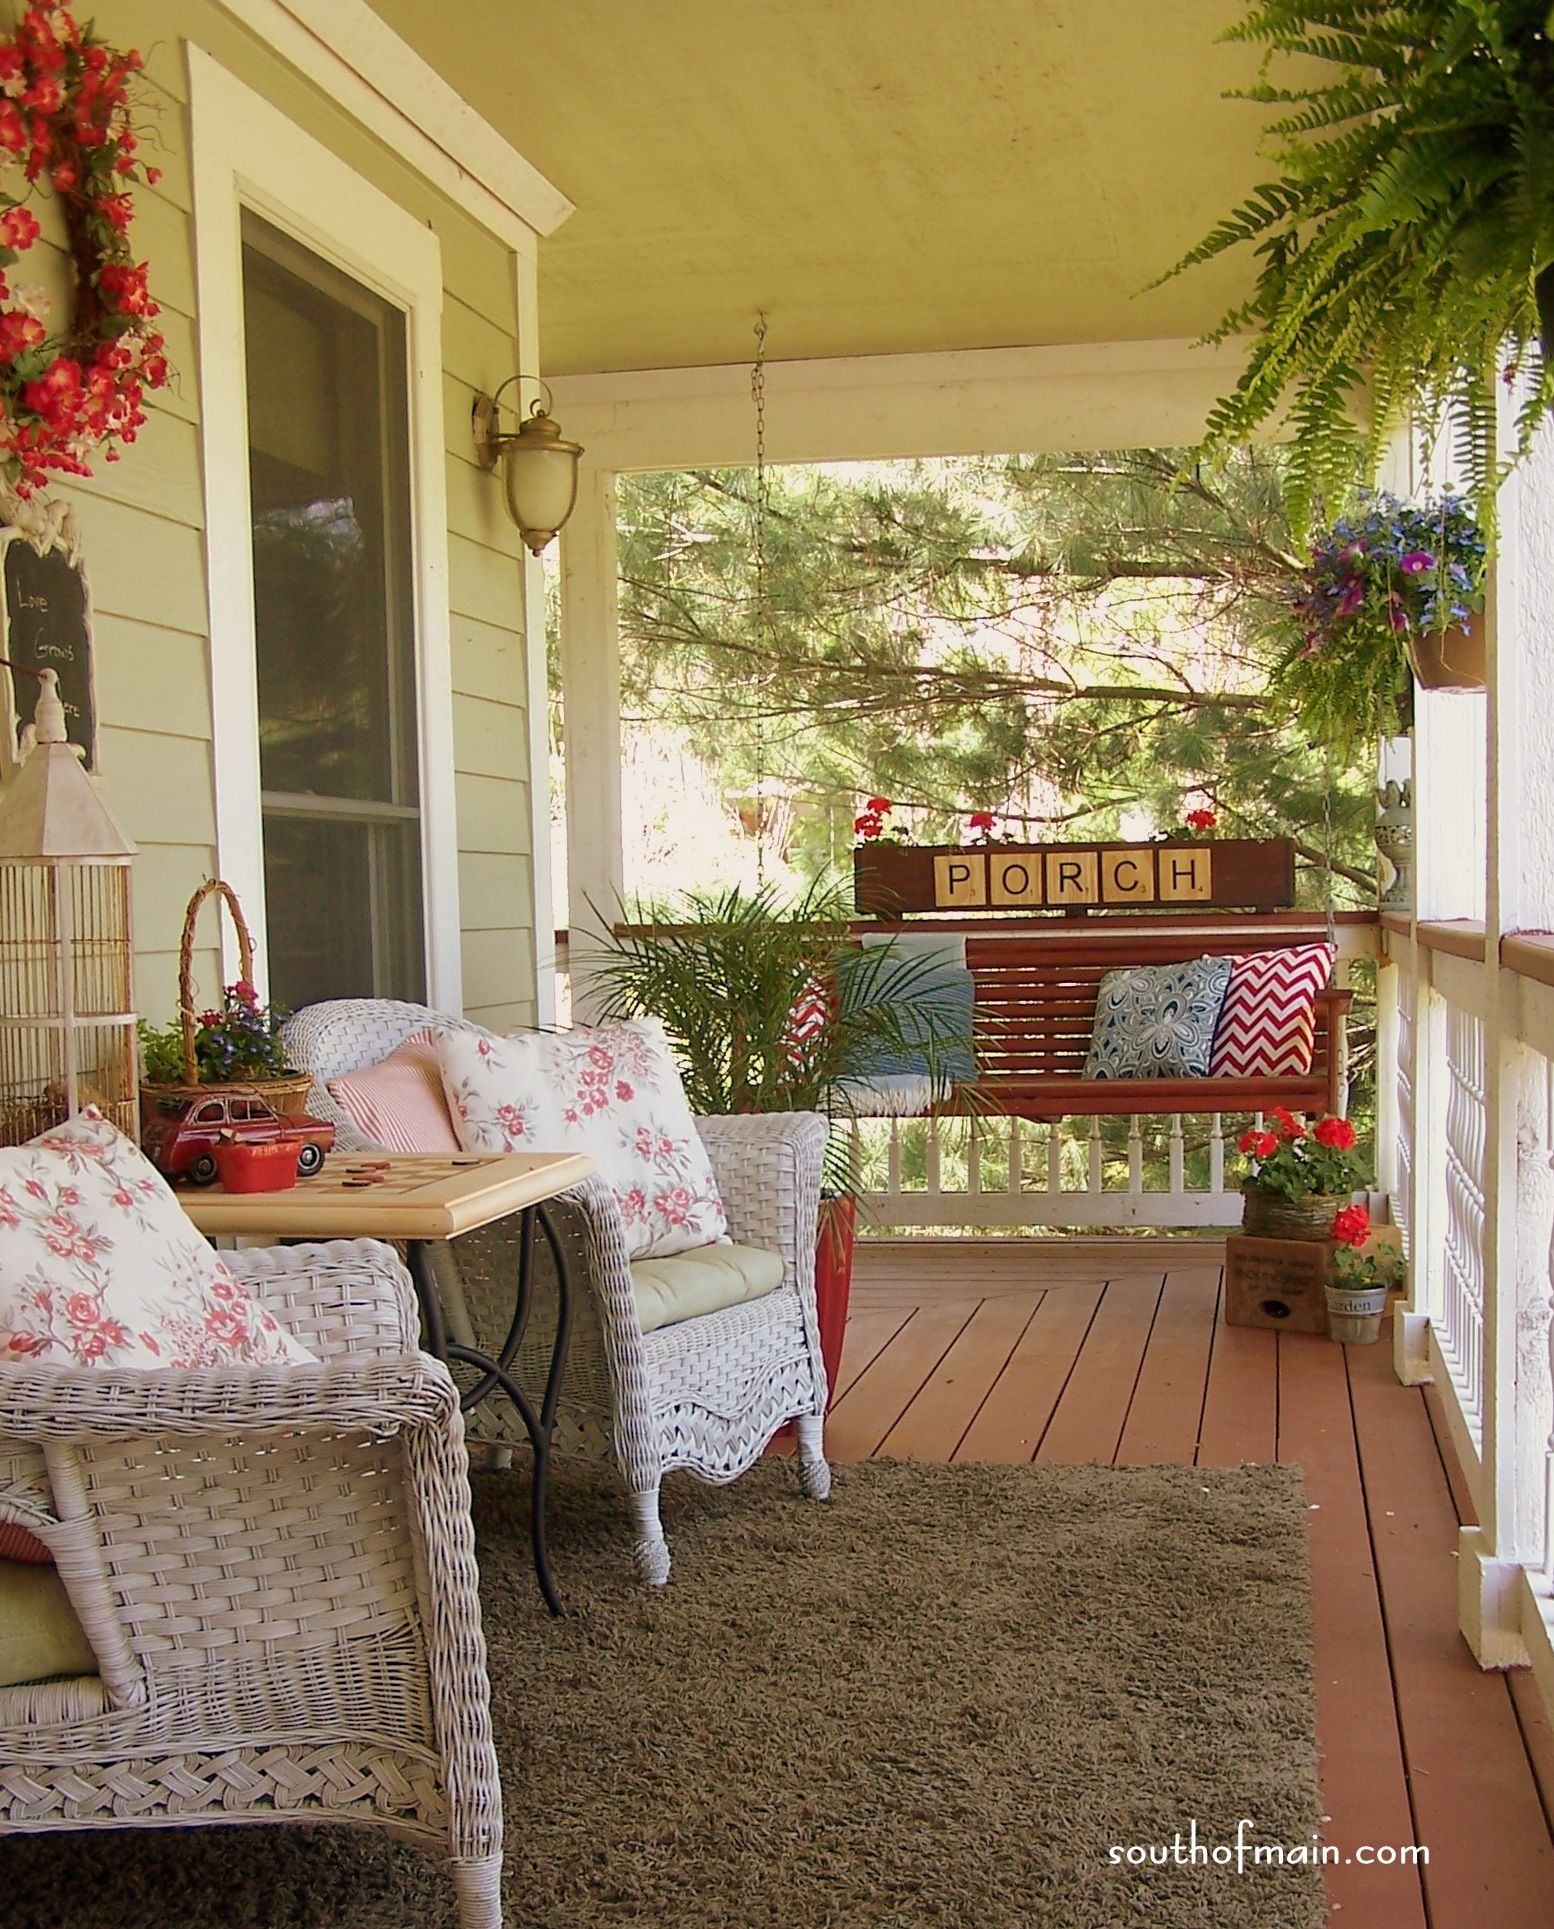 Farmhouse Front Porch Swing I Want This Porch Outdoor Ideas Porch Porch